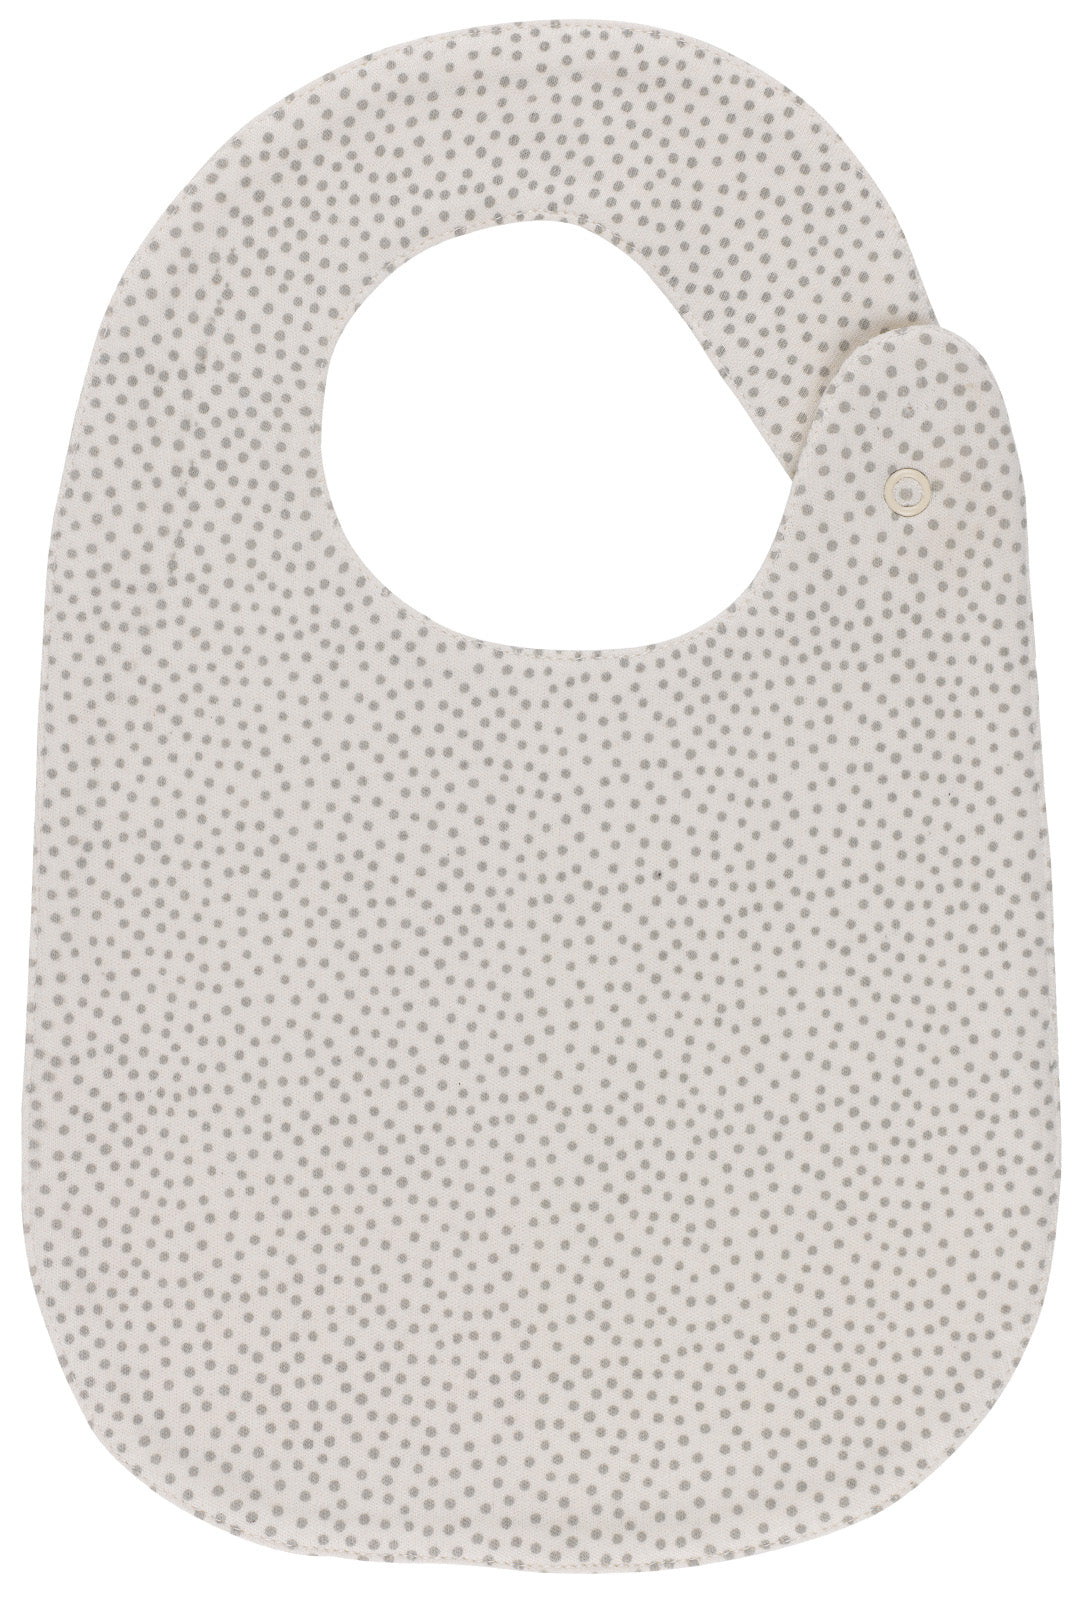 Mini Polka Dots Snap Button Bib